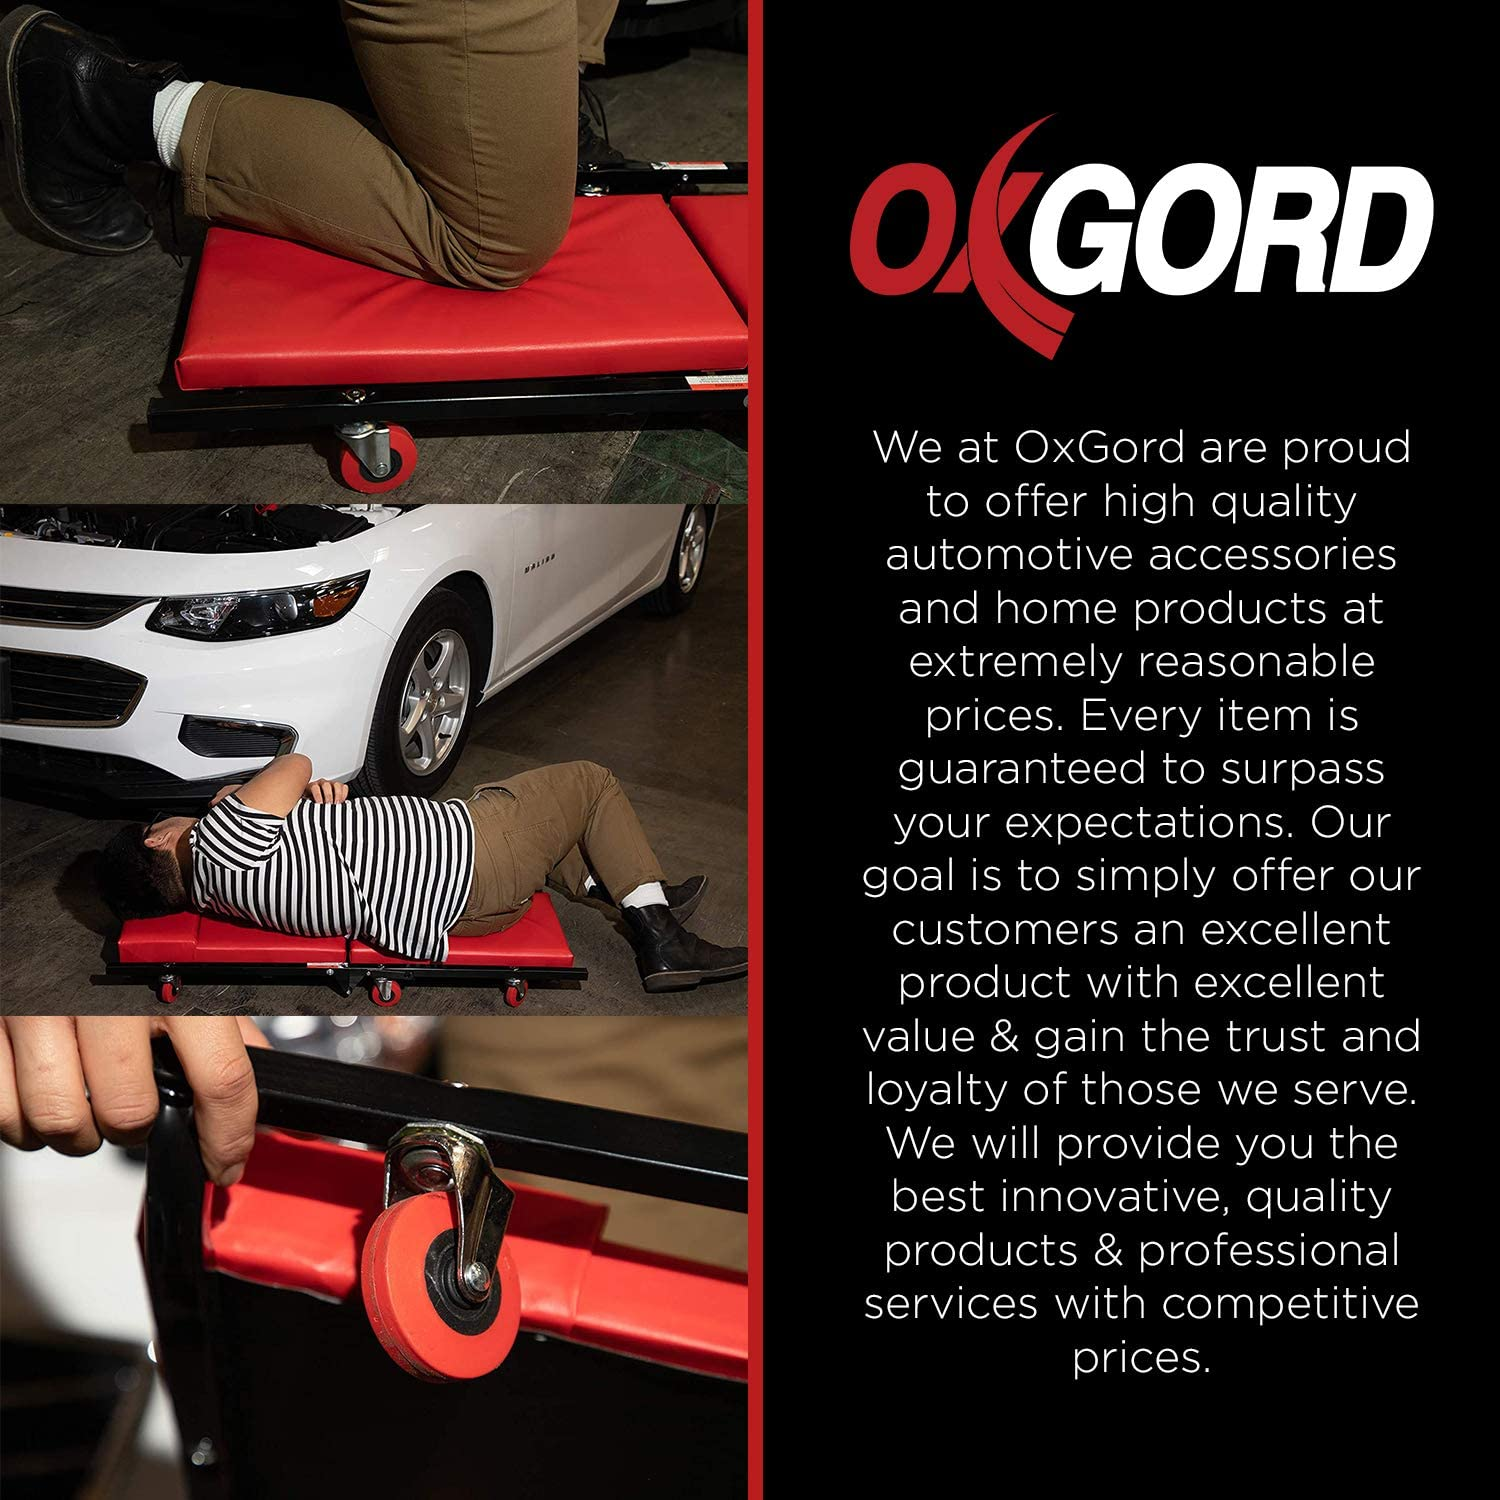 """Mechanic Creeper Car Shop Creepers - Garage Automotive Accessories Best for Auto Floor Low Profile 40"""" Crawler Roller Mechanics Tools & Equipment Foldable Scooter Board Flat Mat Stool Chair Seat Cart: Home Audio & Theater"""